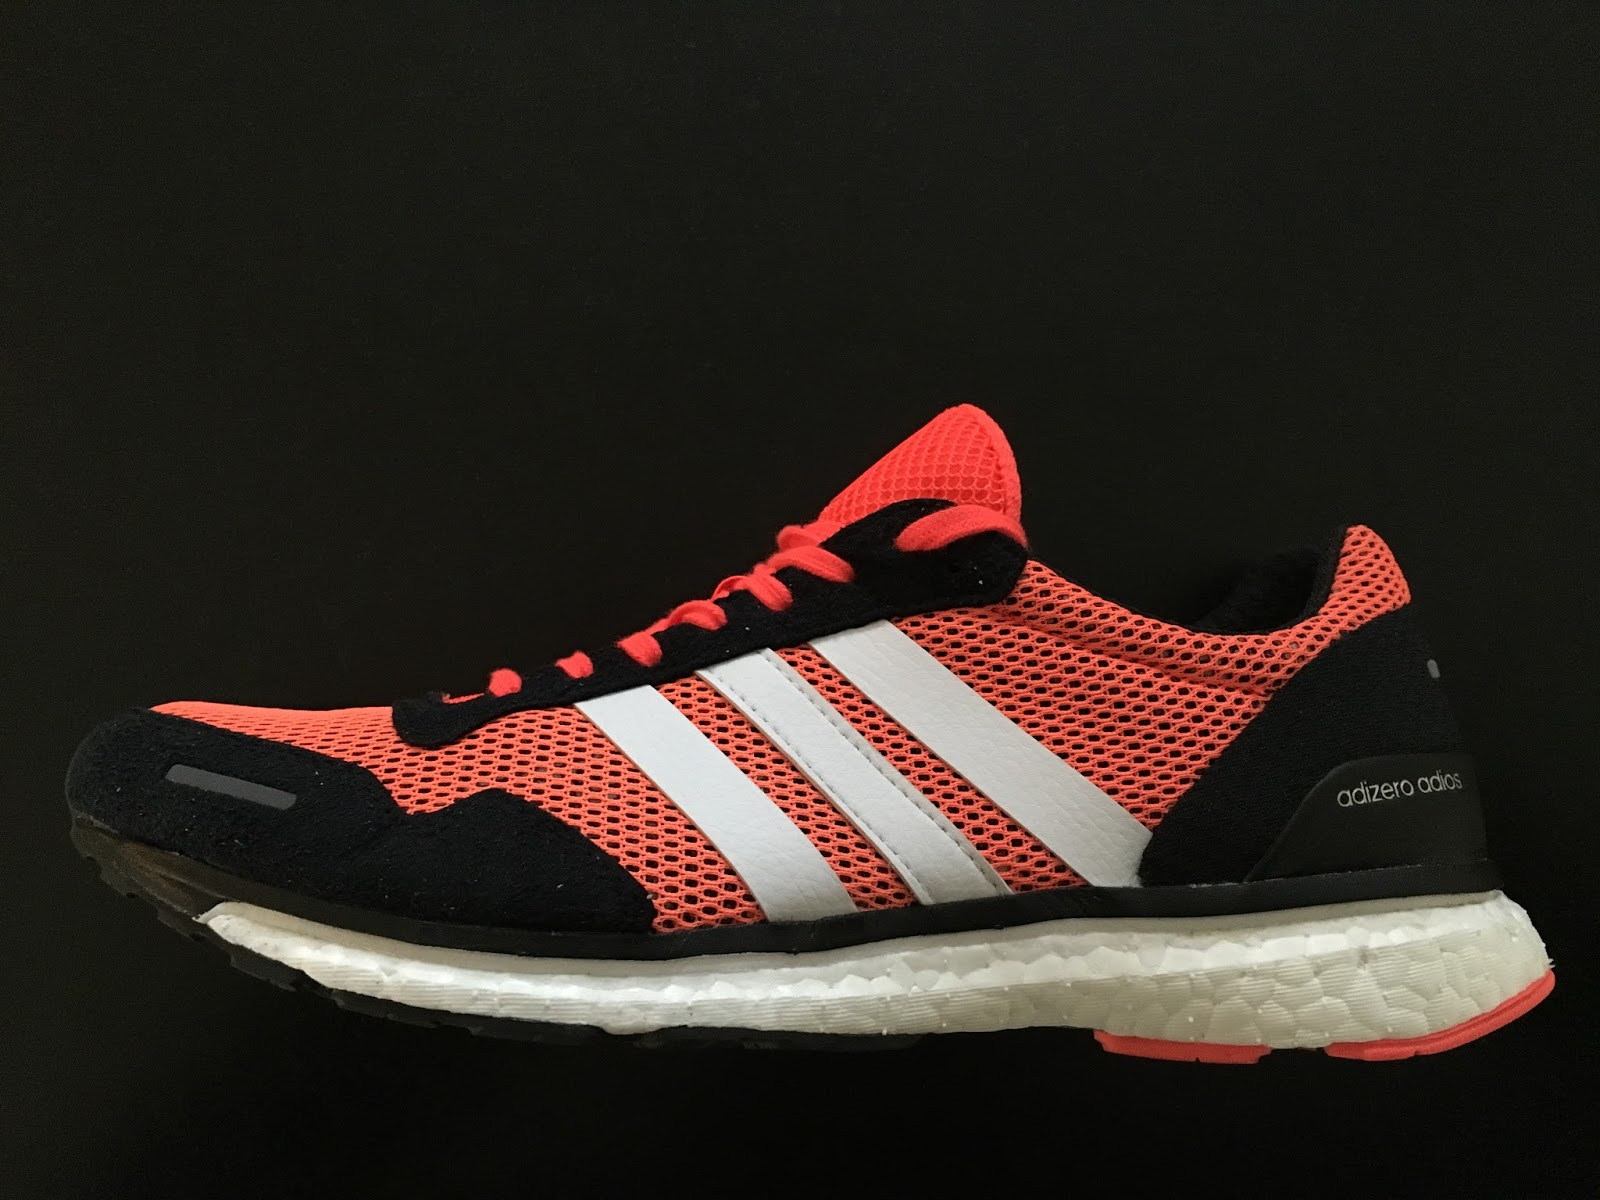 new arrival 3dadc f5069 The adidas adizero adios Boost 3 is the latest iteration of the shoe worn  by Dennis Kimetto to the marathon world record of 202.57 in 2014.